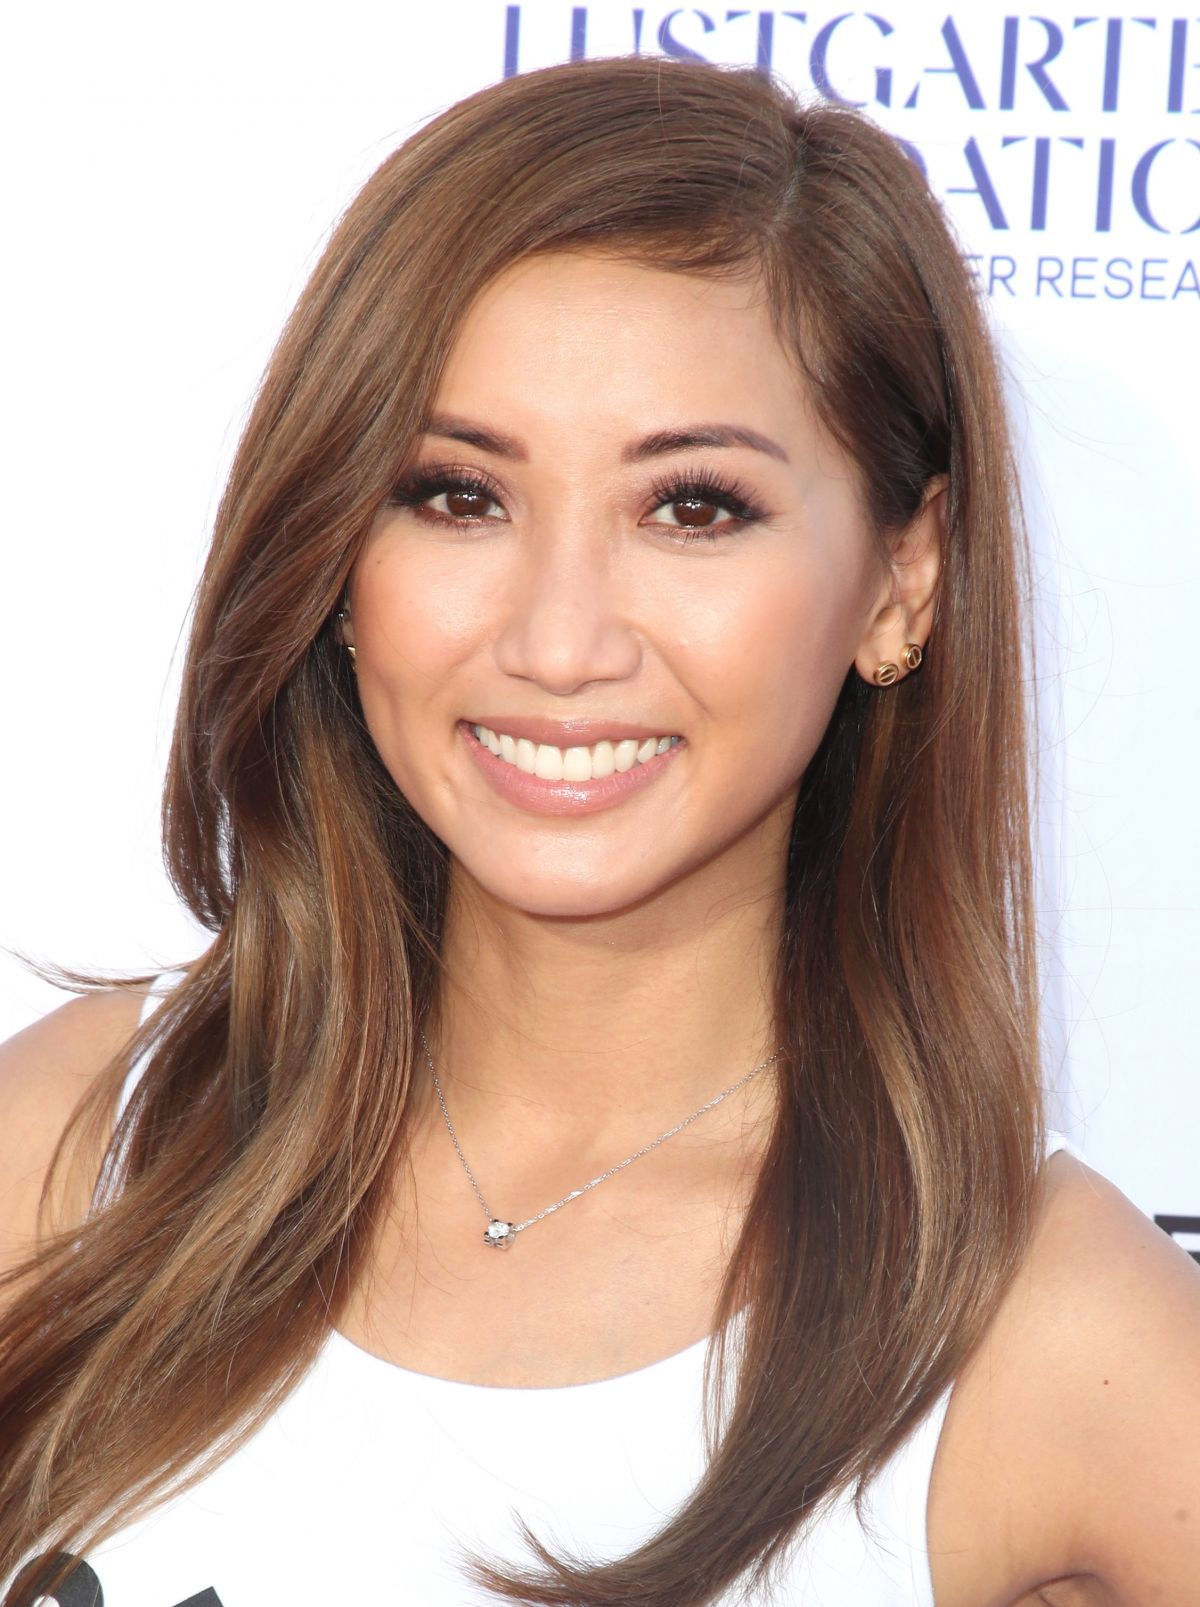 Young Brenda Song nude (63 photo), Topless, Bikini, Twitter, butt 2015